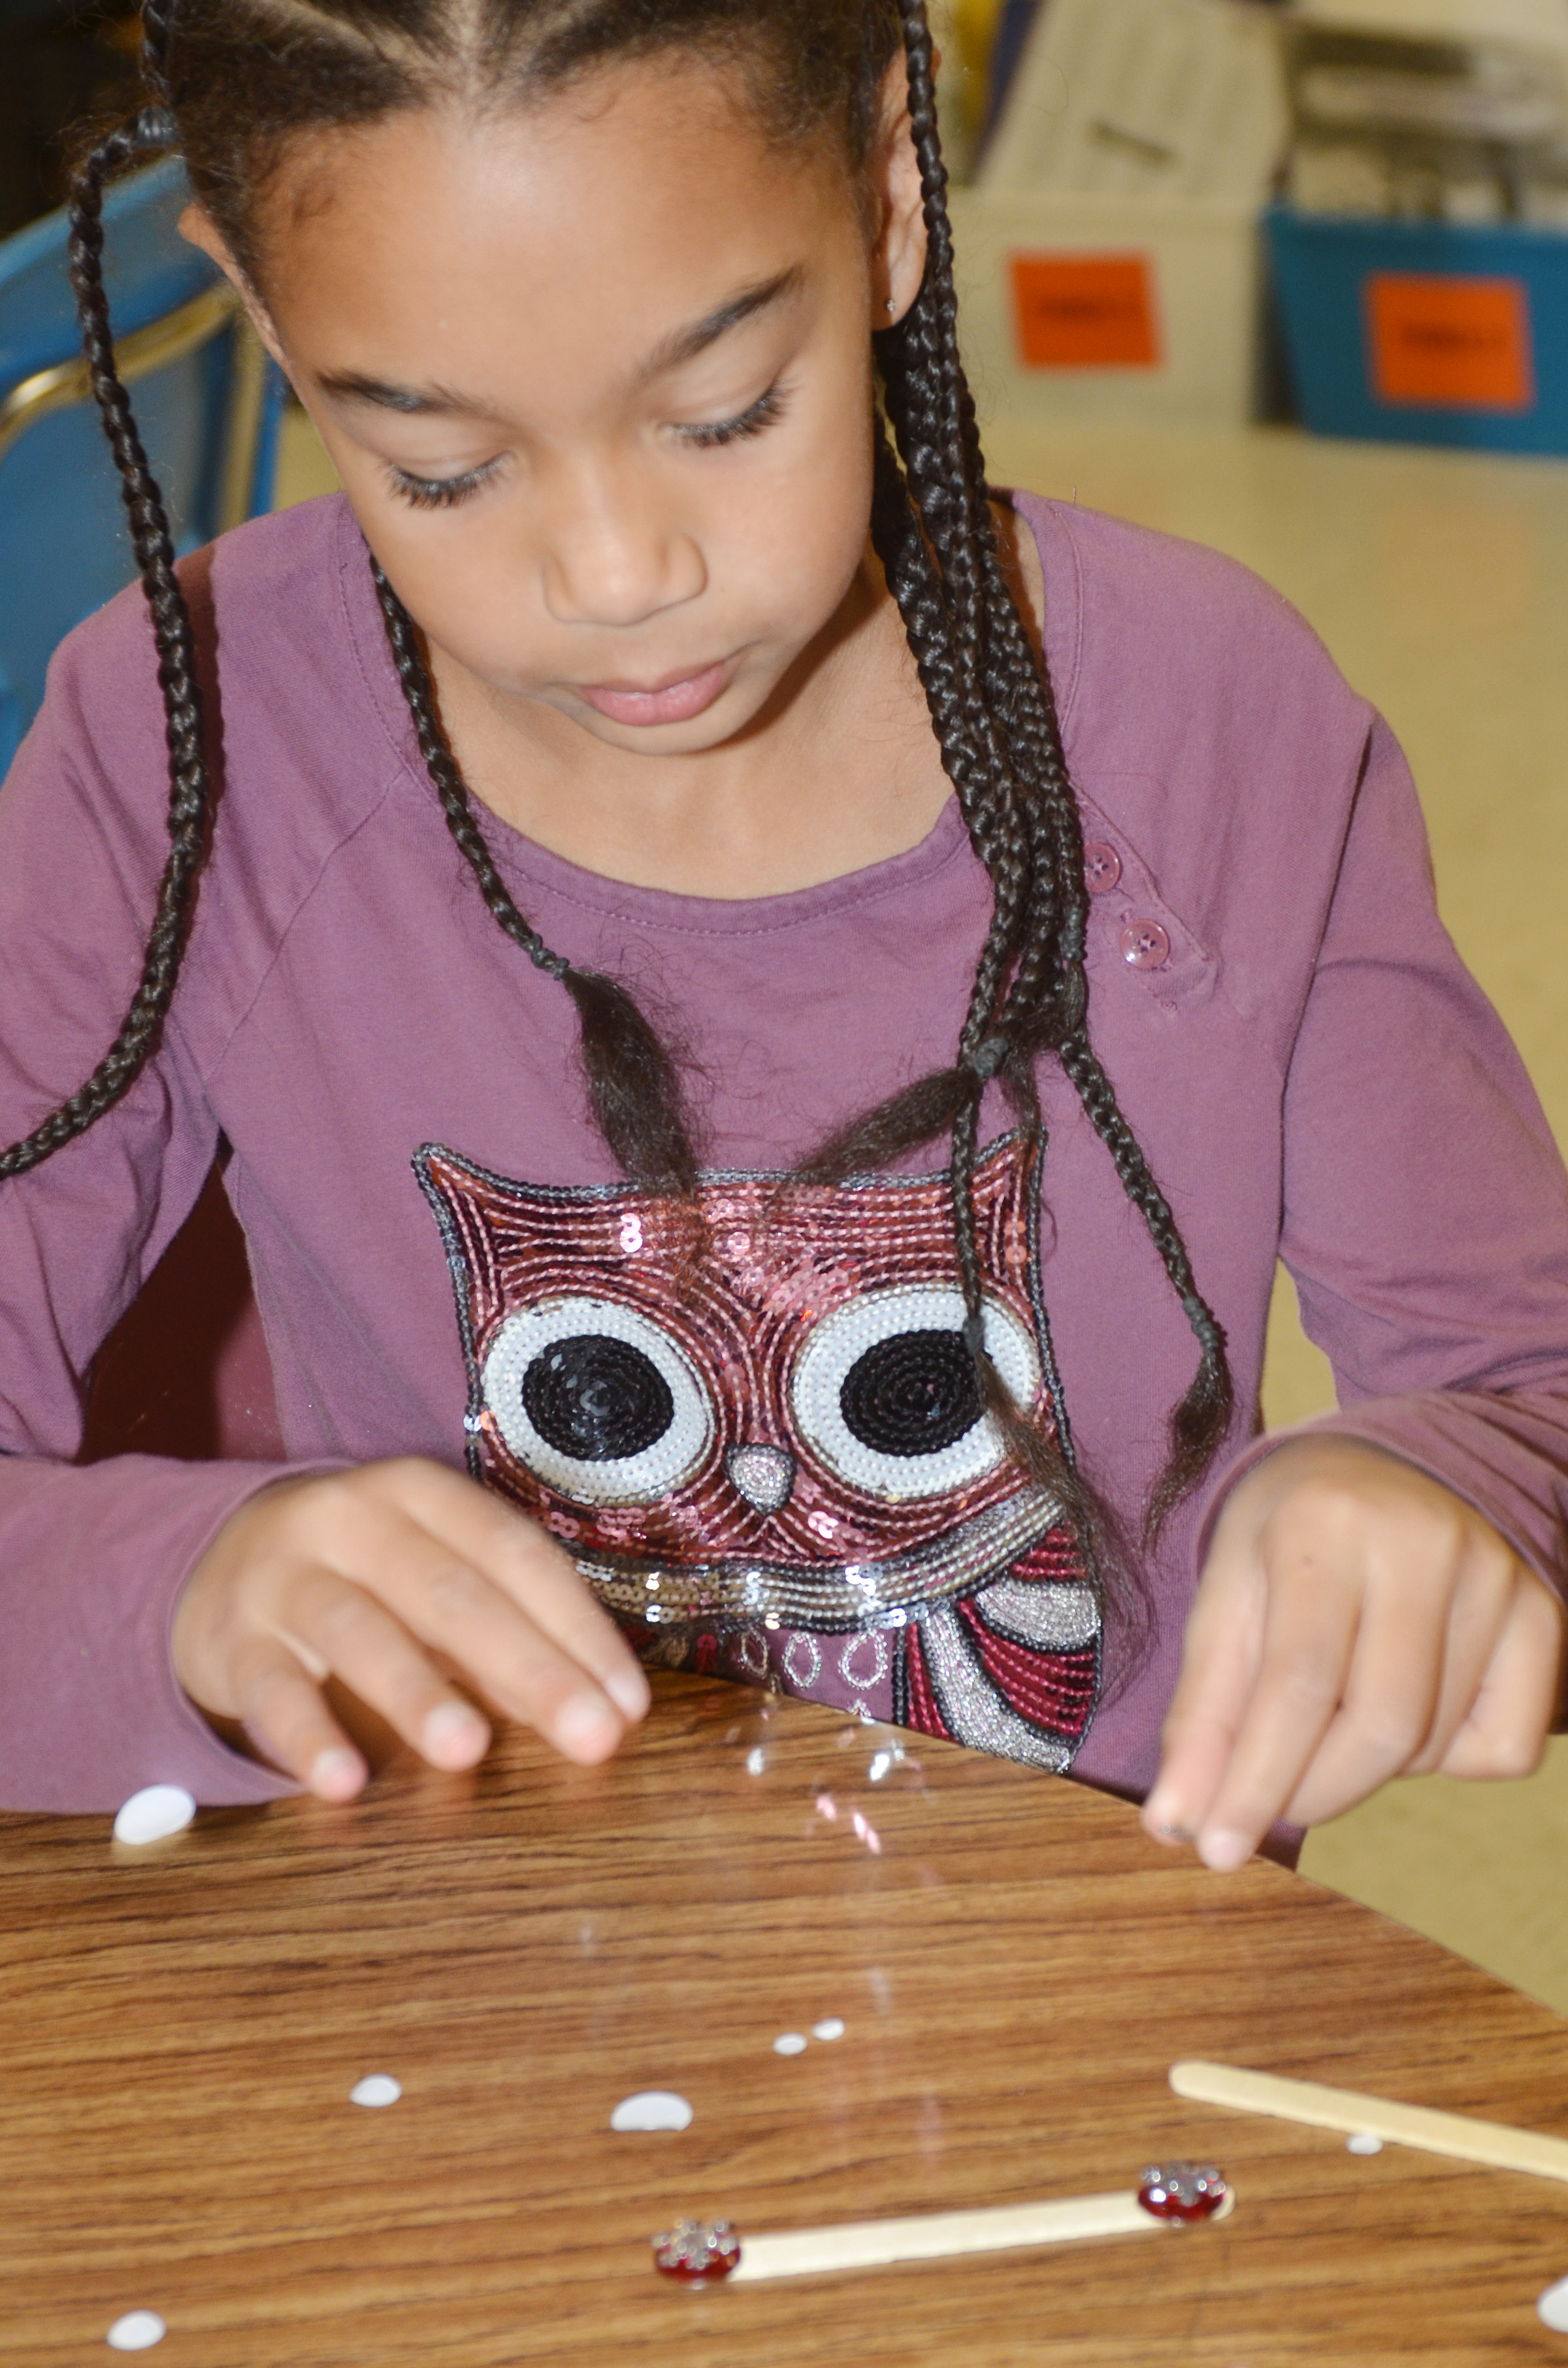 CES third-grader De'Asia Fisher makes a snowflake ornament.